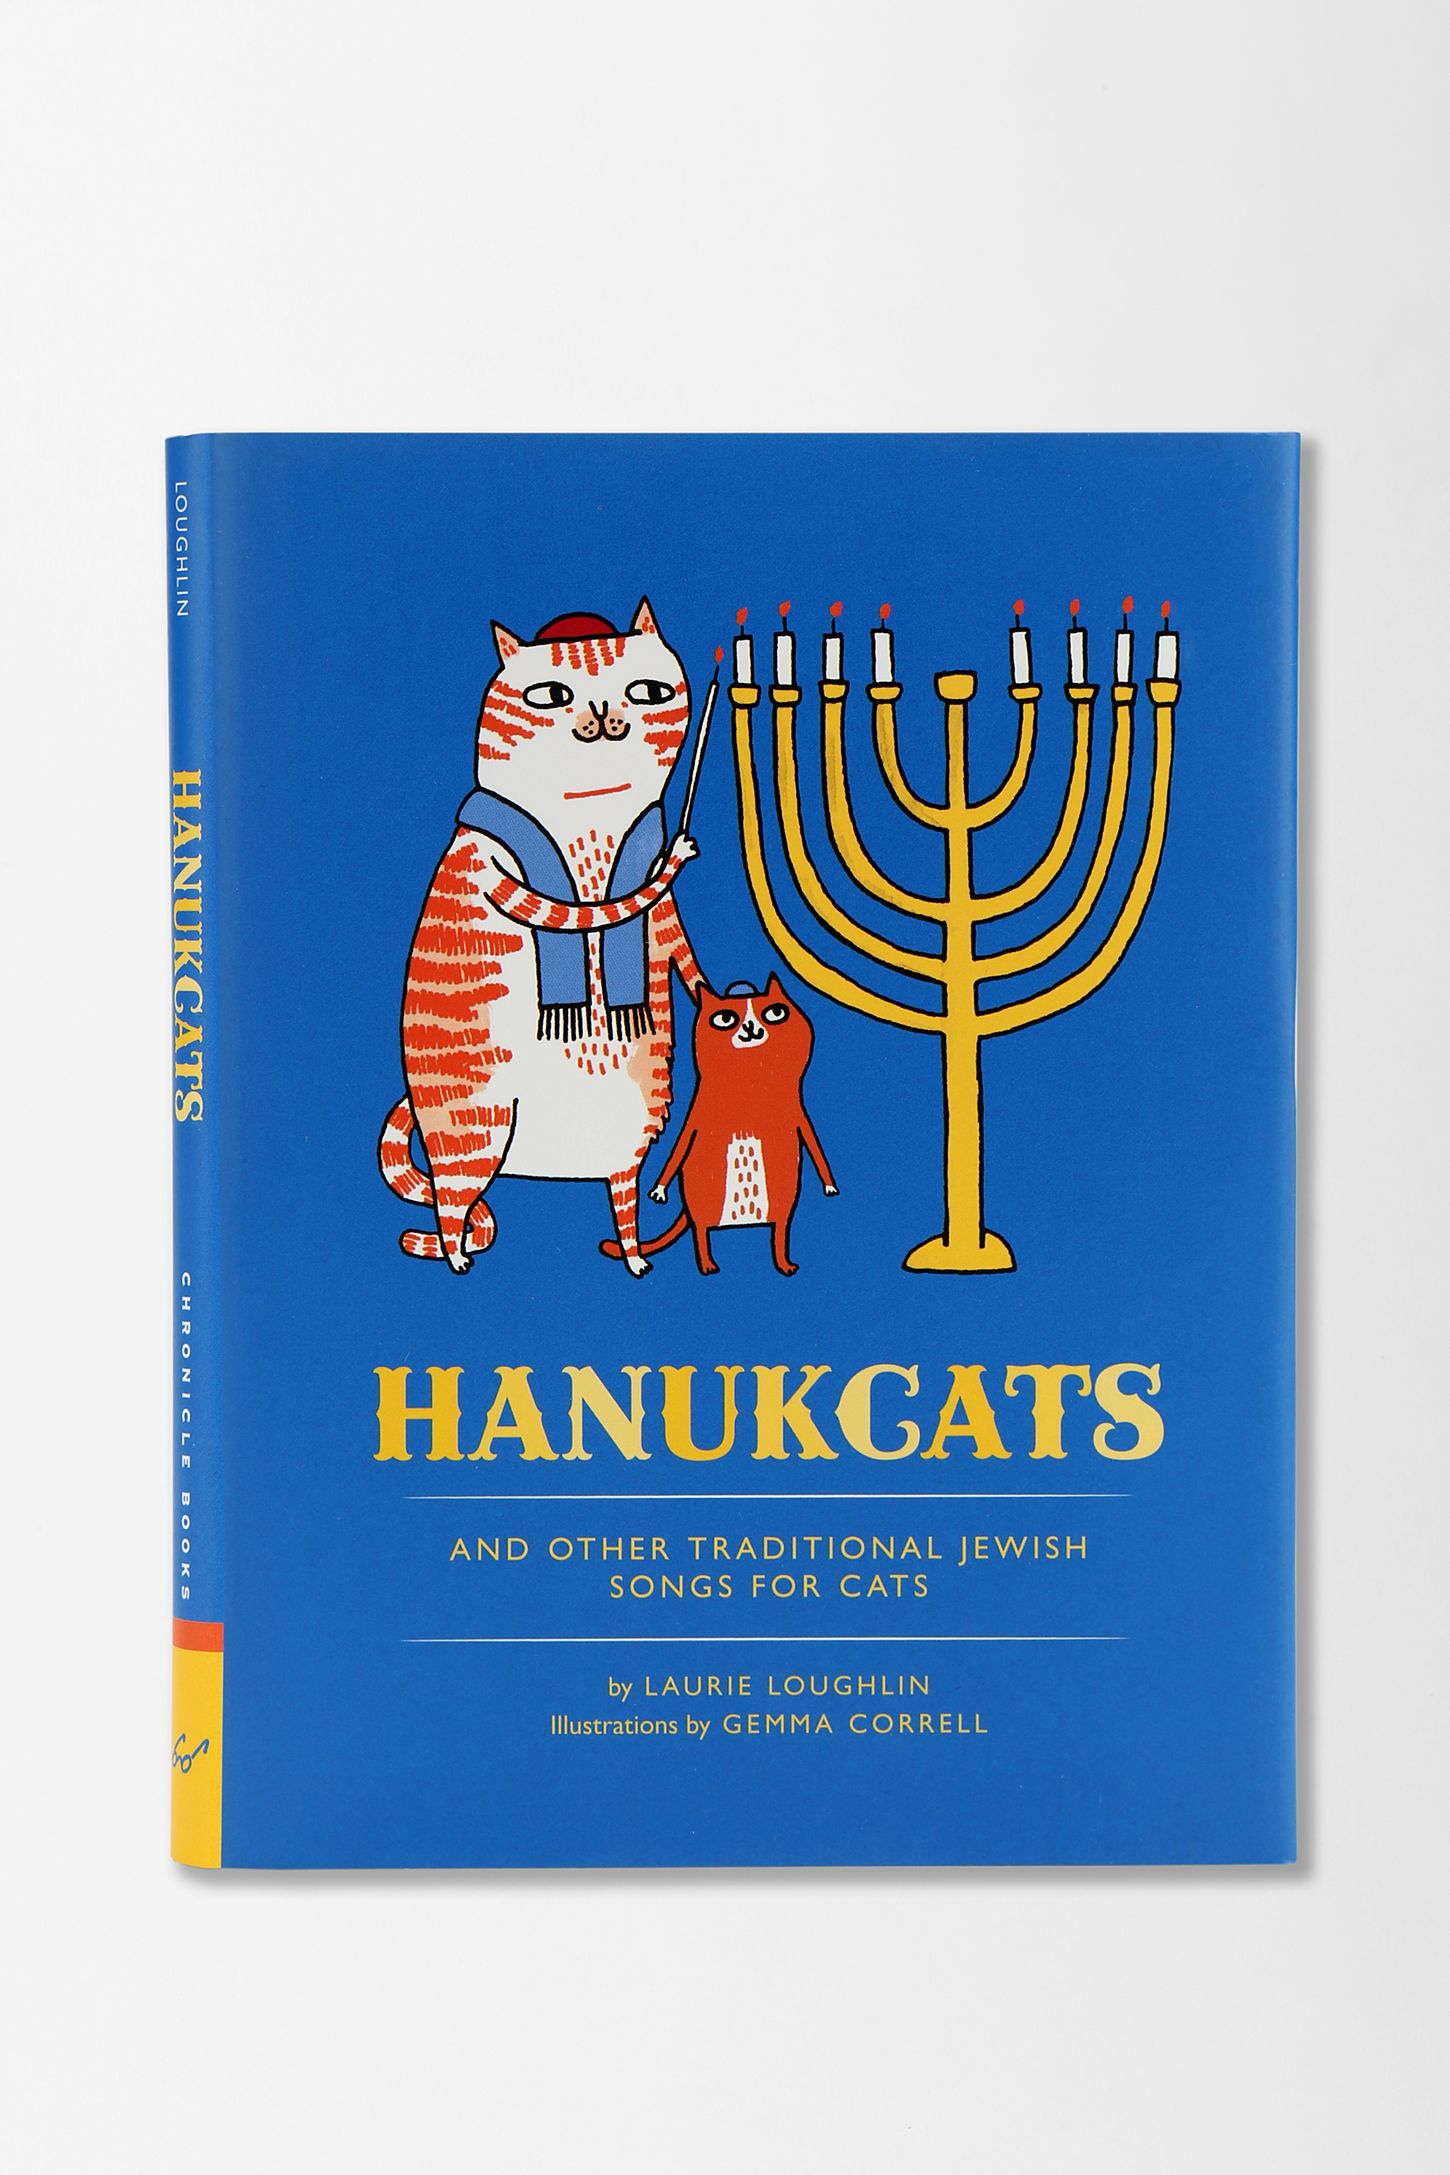 Hannukcats And Other Traditional Jewish Songs For Cats By Laurie